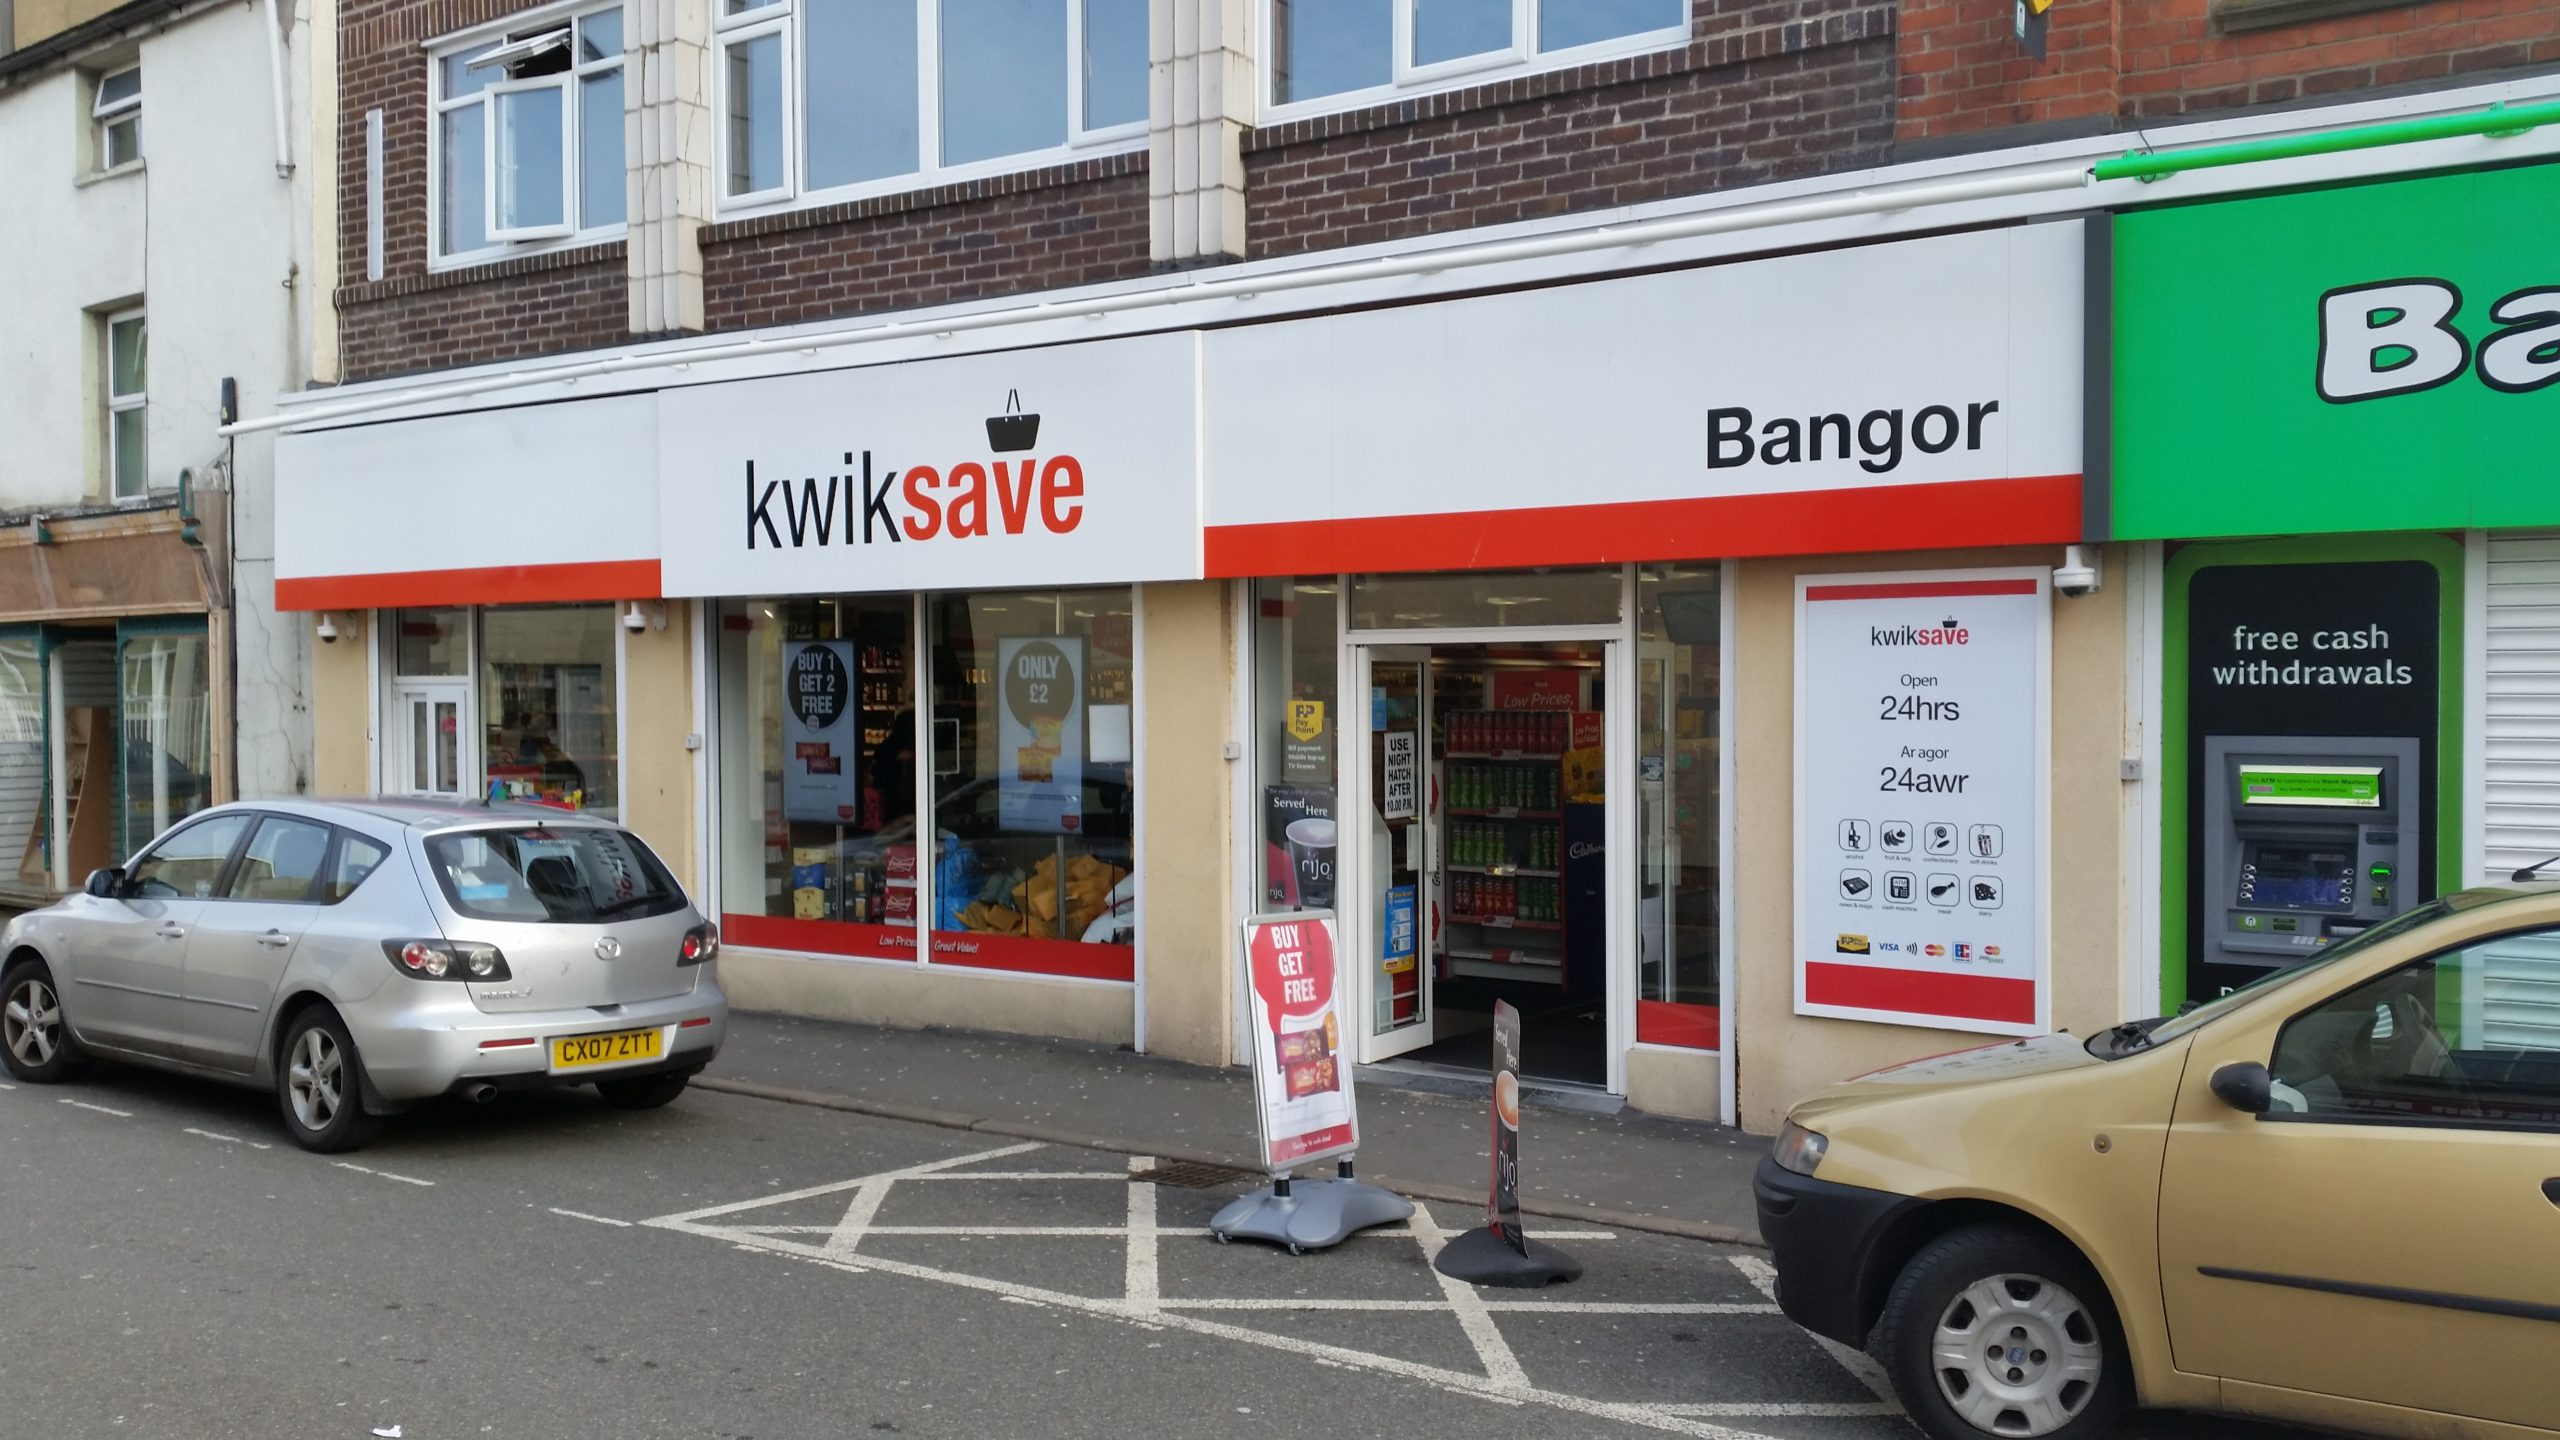 Kwiksave on Bangor high street currently run by Manny Shoker. Photos By Jose Nunes.